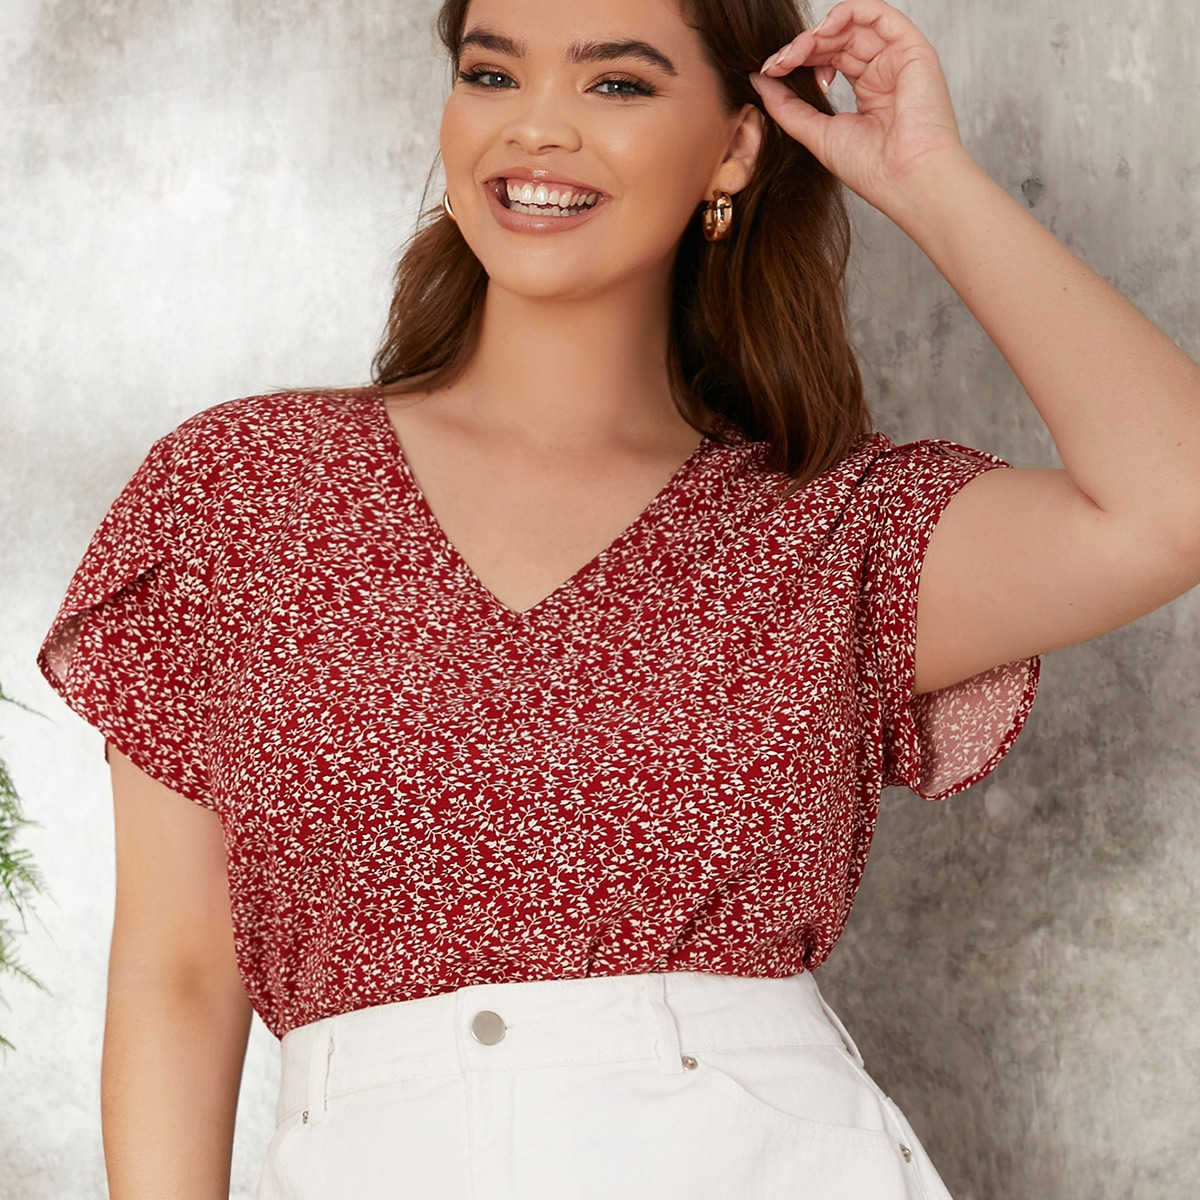 SHEIN Casual Planten Grote maat blouse